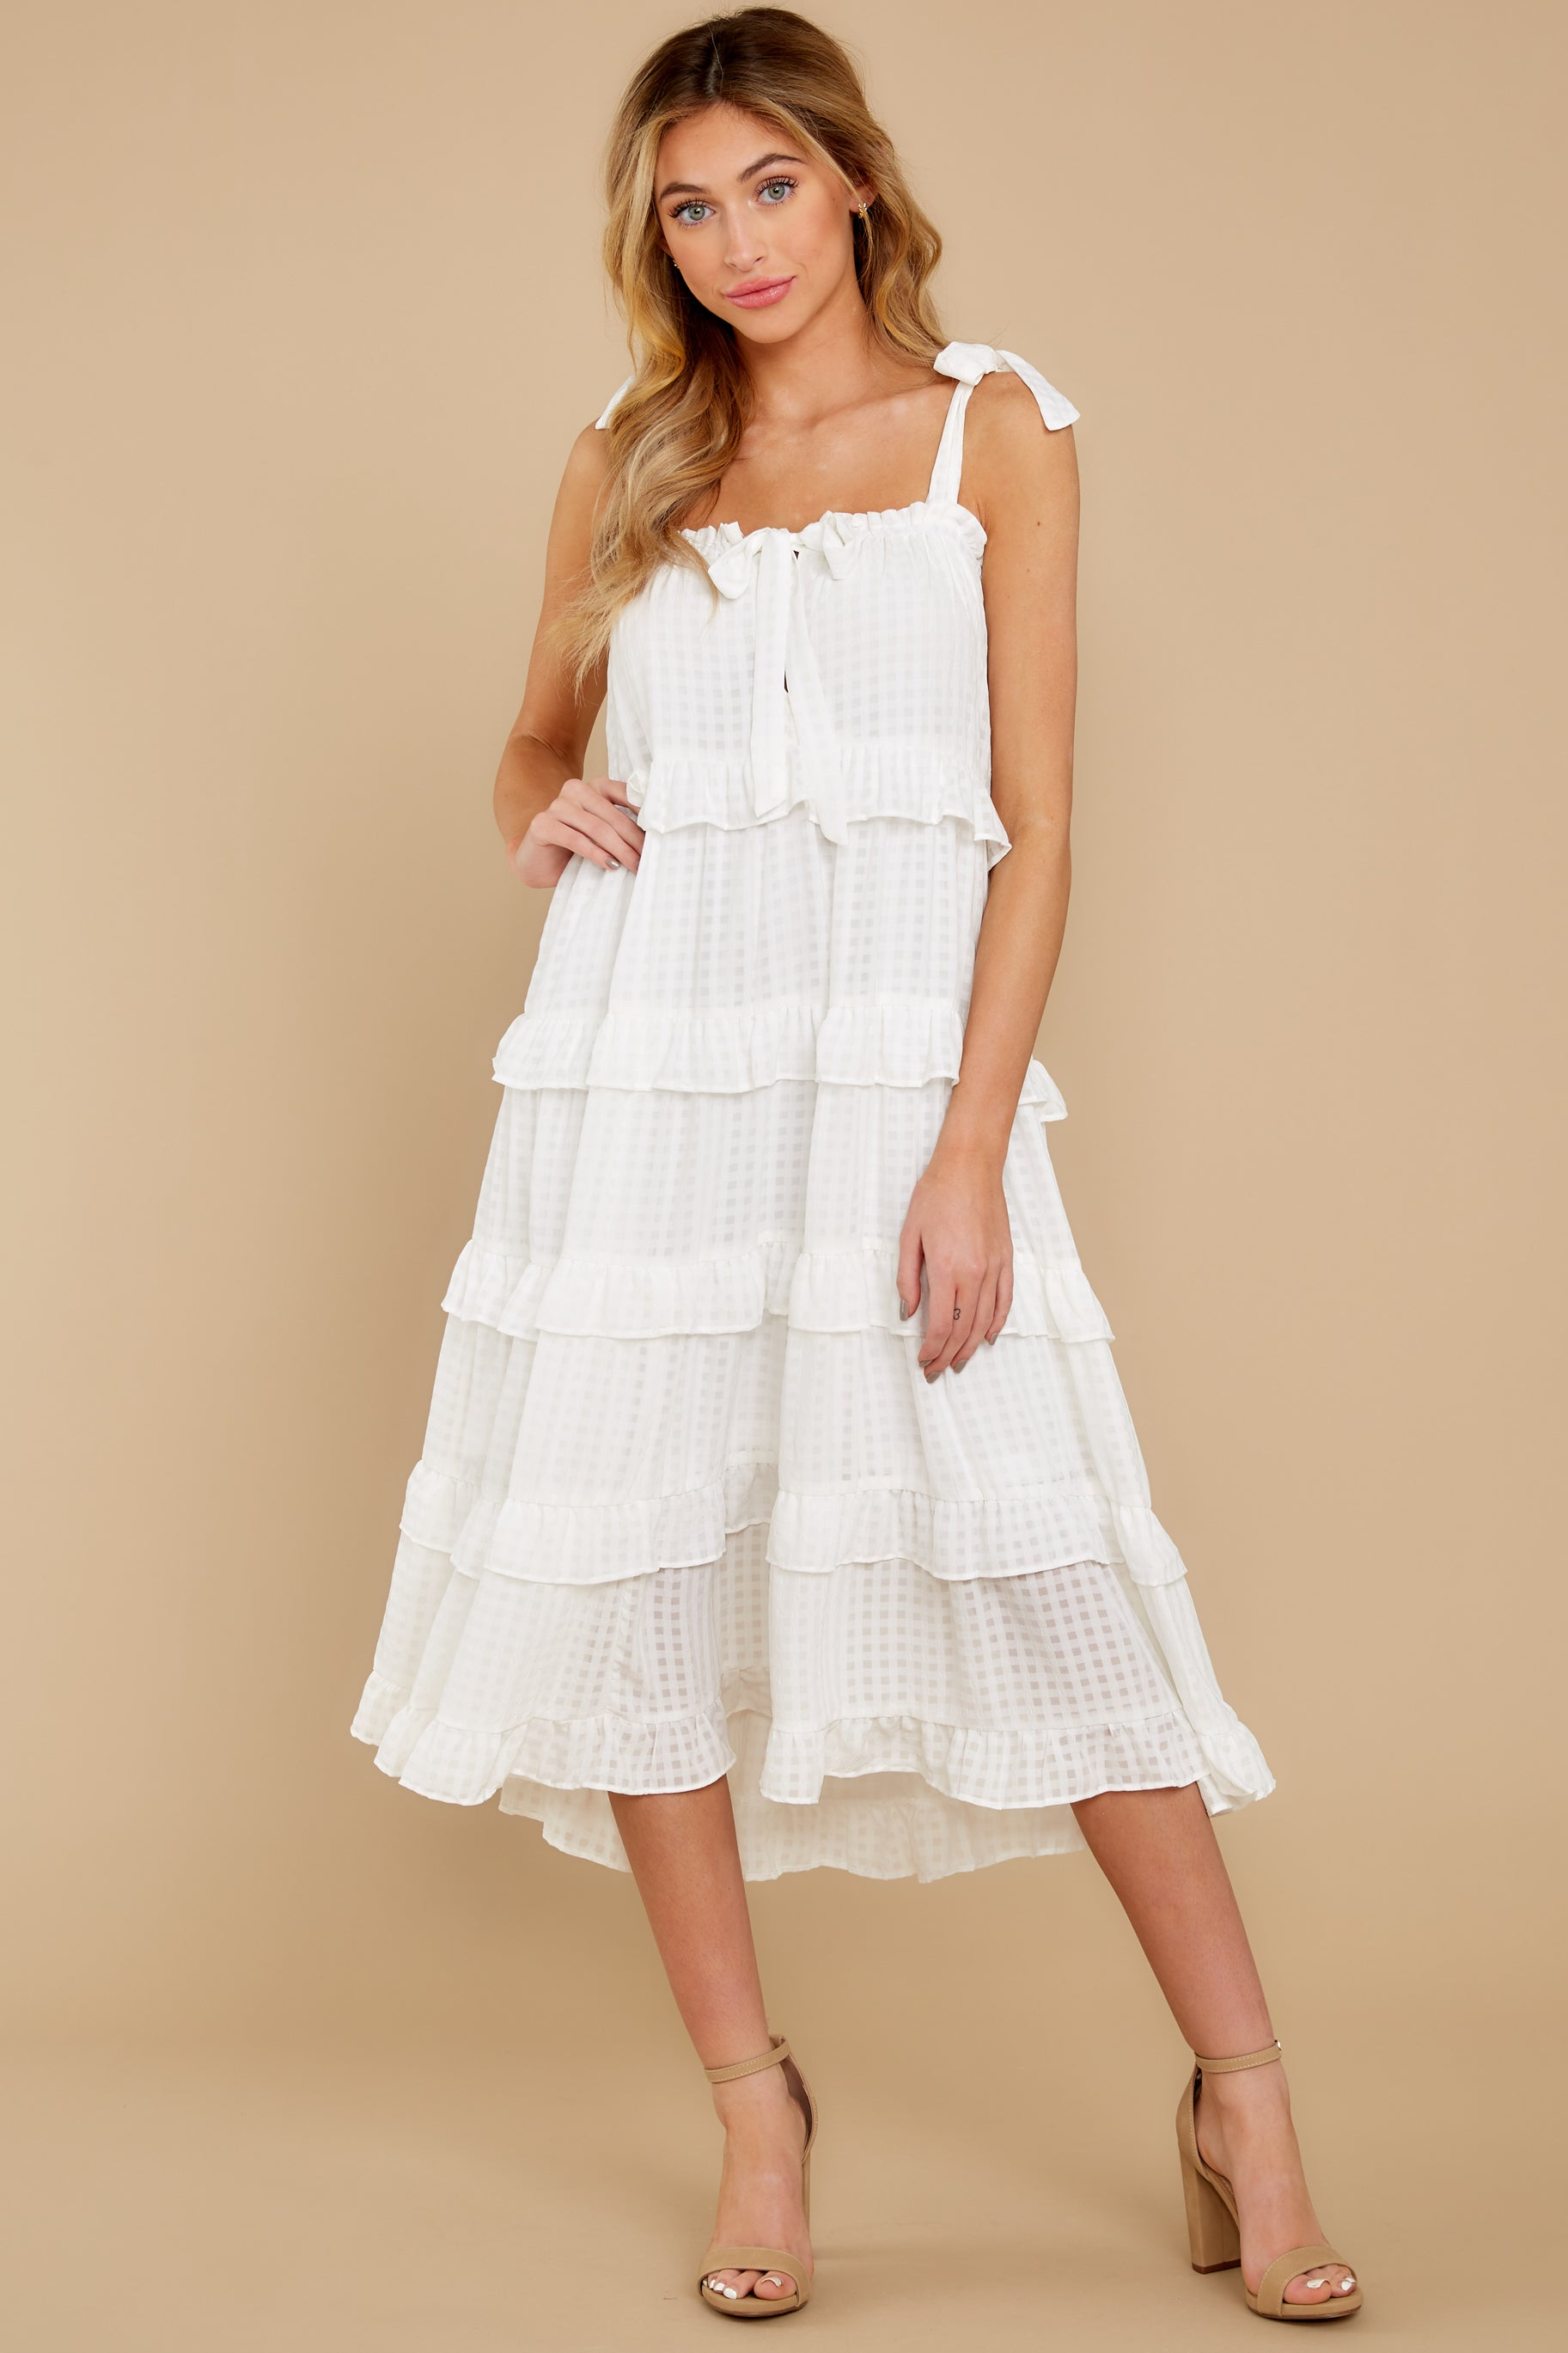 7 Never Say Never White Midi Dress at reddress.com